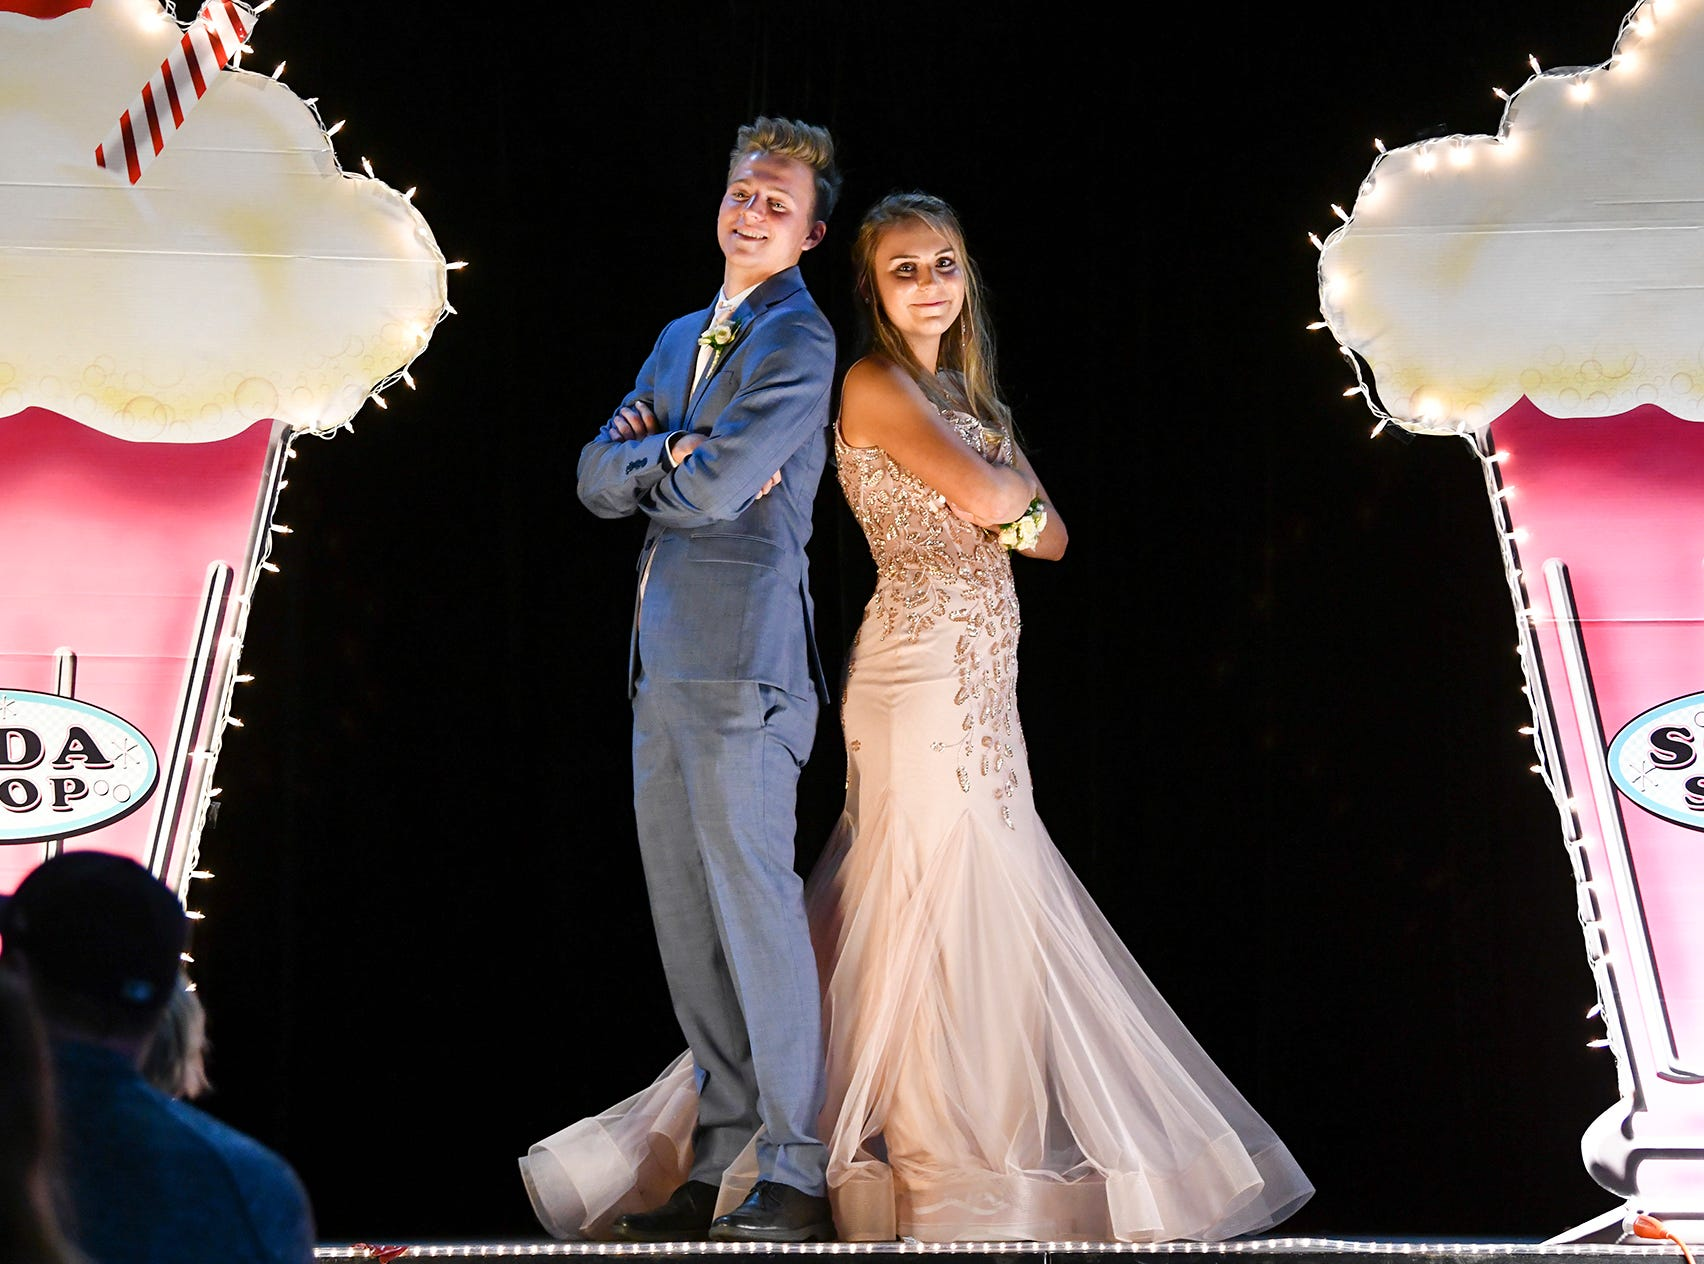 A couple strikes a pose on stage during Sartell High School's prom grand march Saturday, May 4, at the River's Edge Convention Center in St. Cloud.